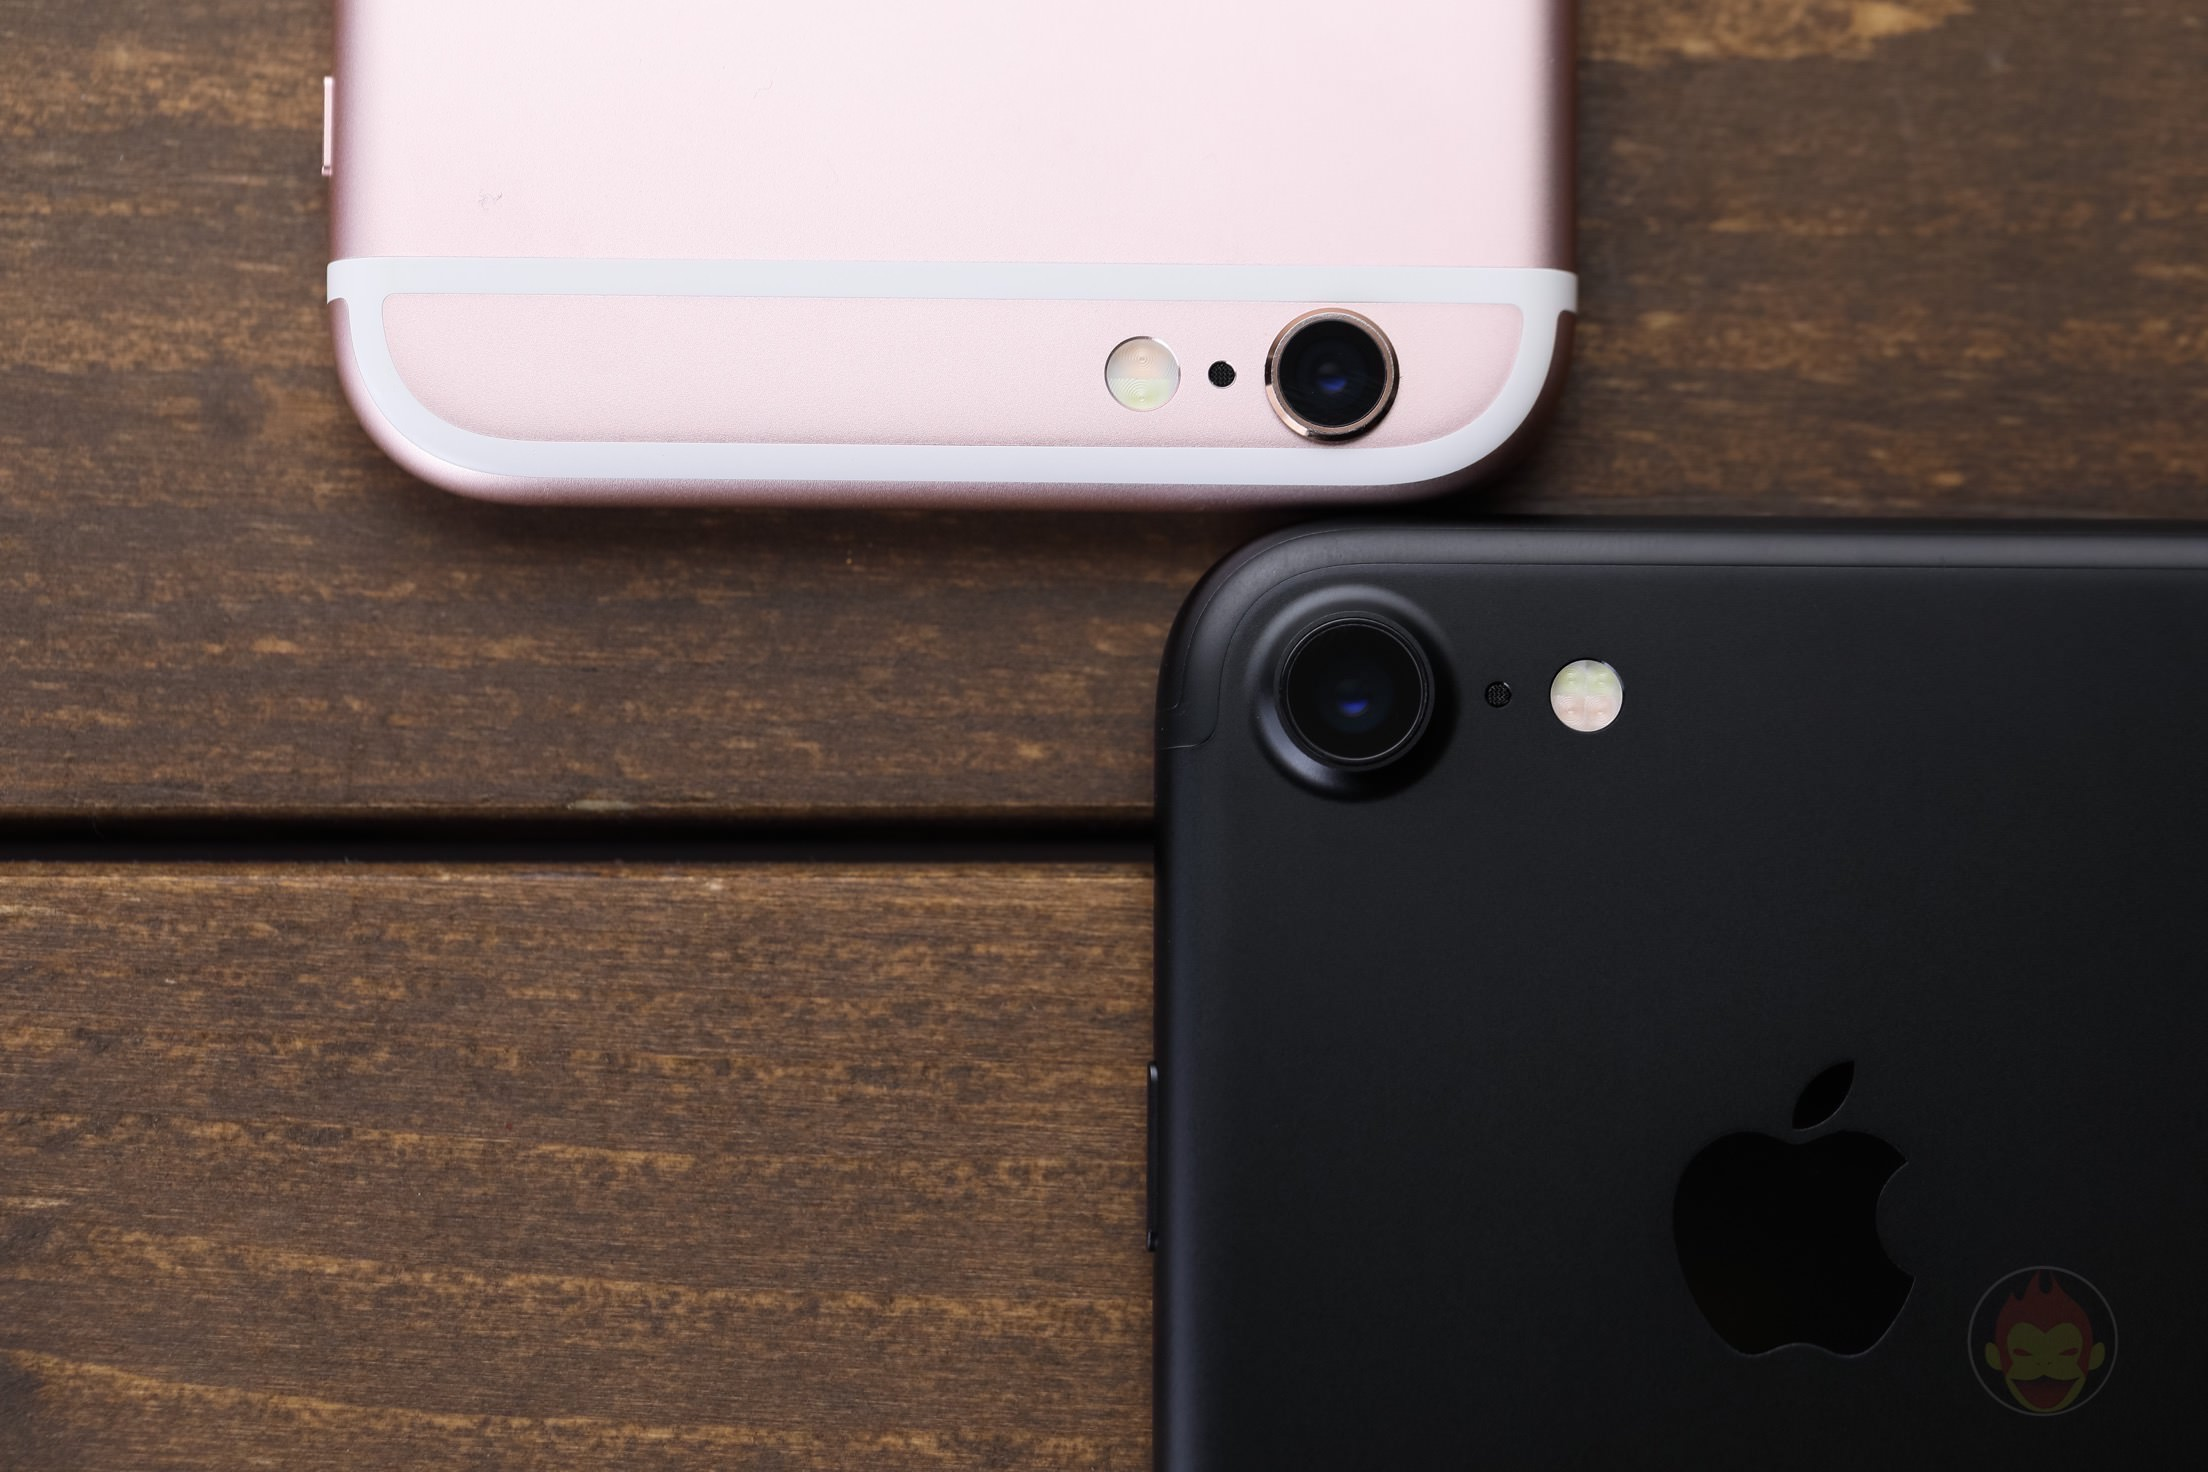 IPhone7 iPhone6s Comparison